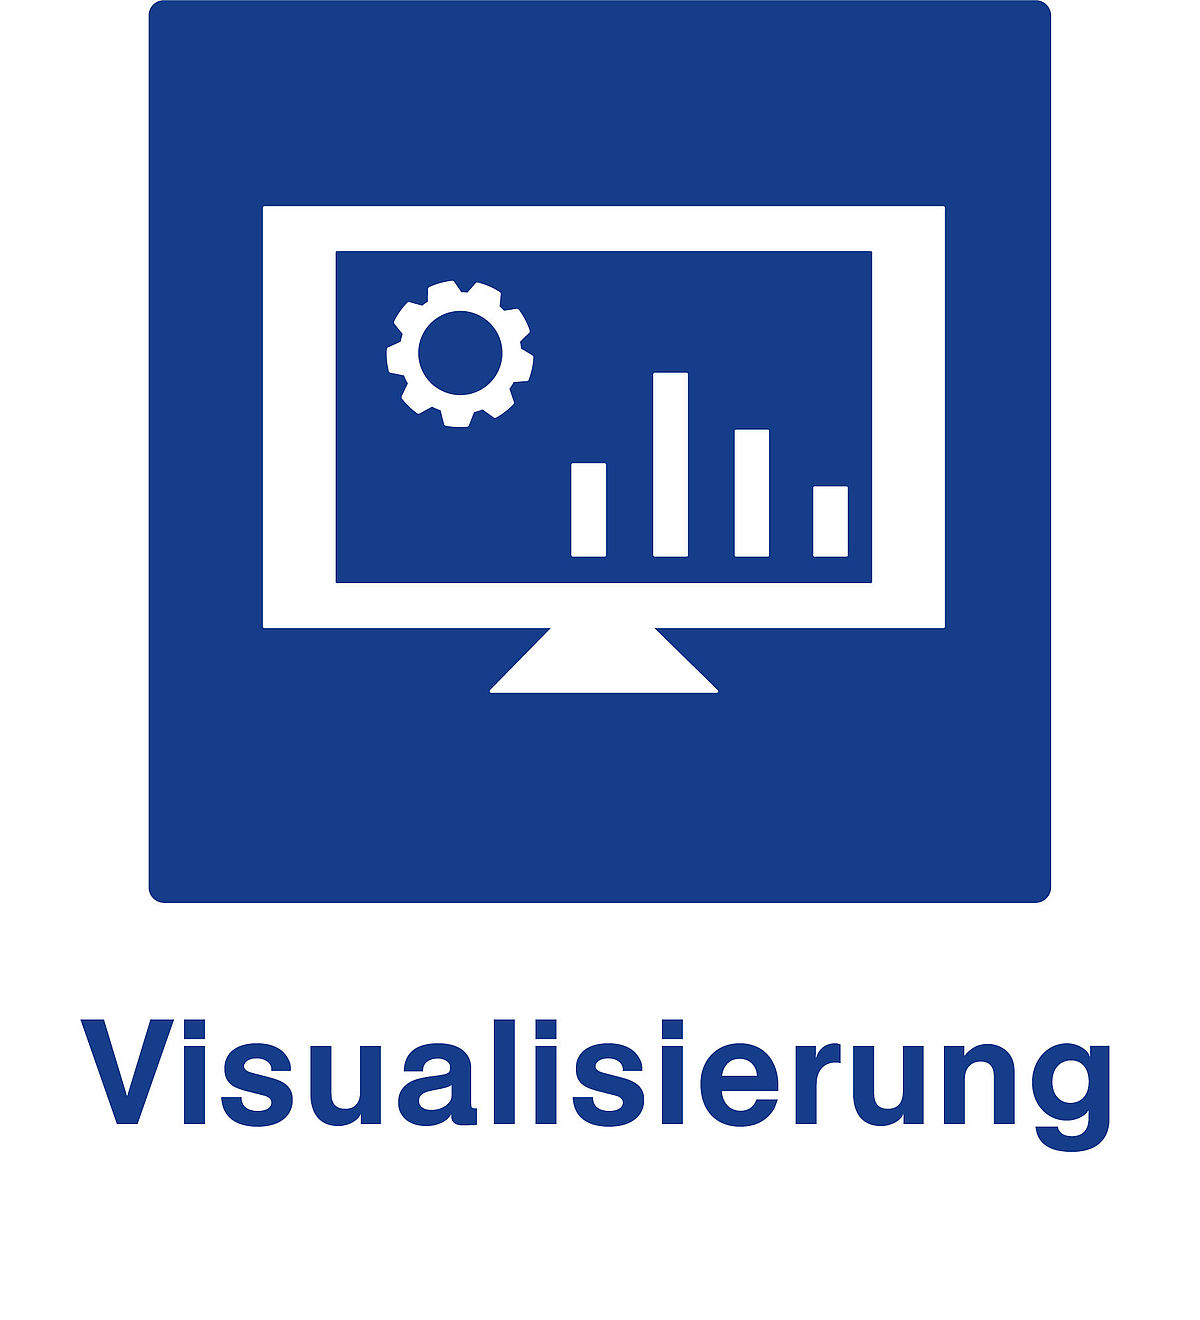 Visualisierung Icon